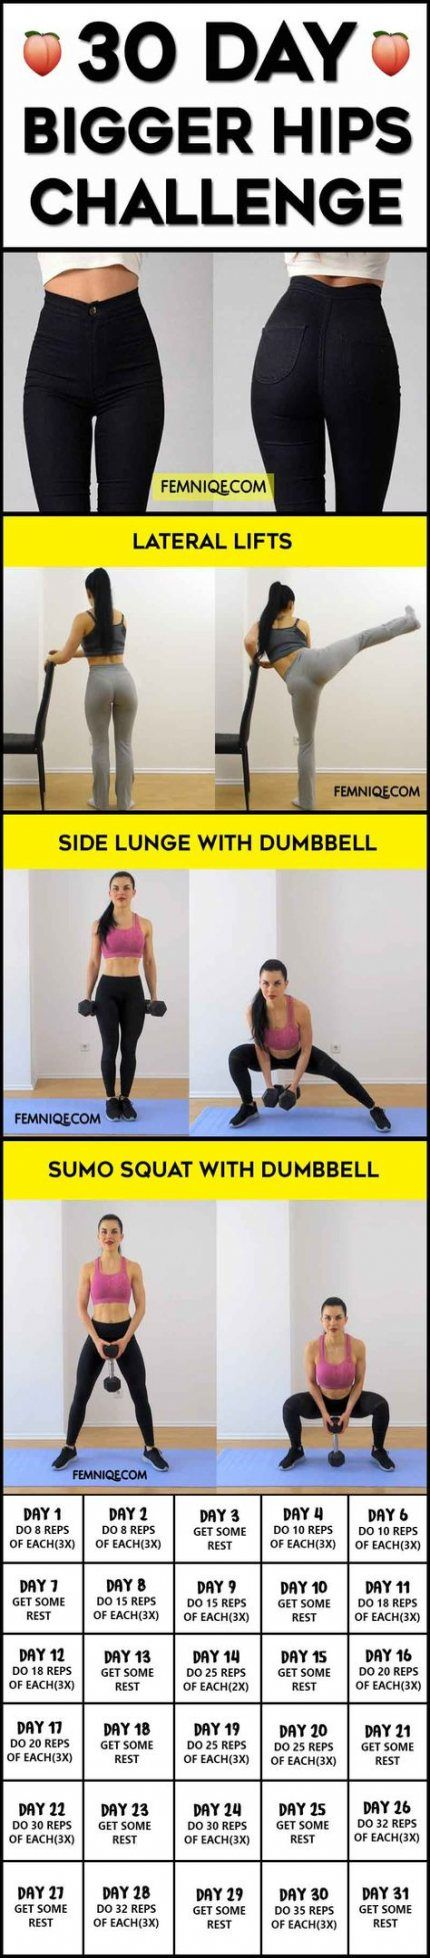 26 Trendy ideas for fitness challenge squats lower bodies #fitness